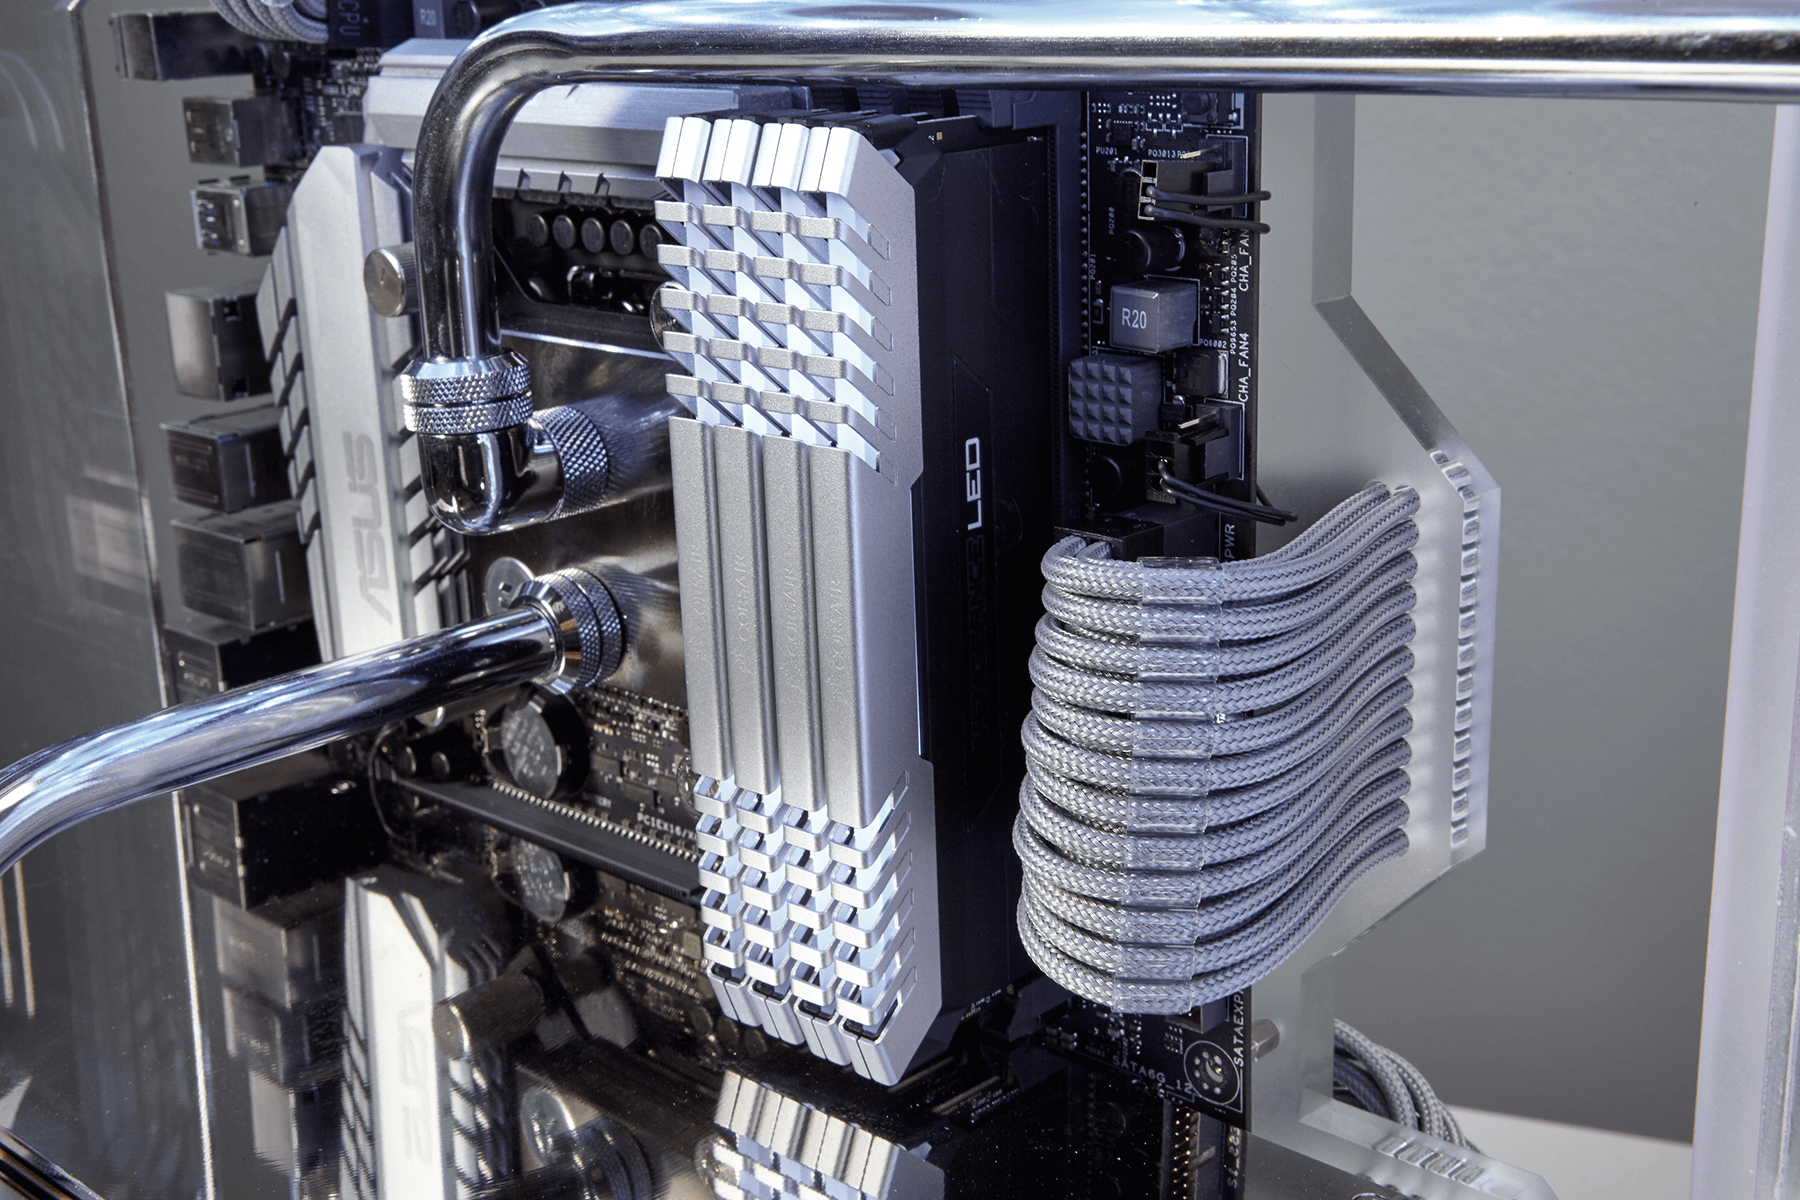 Twistermod_Corsair_ROG_570x_Crystalized_14